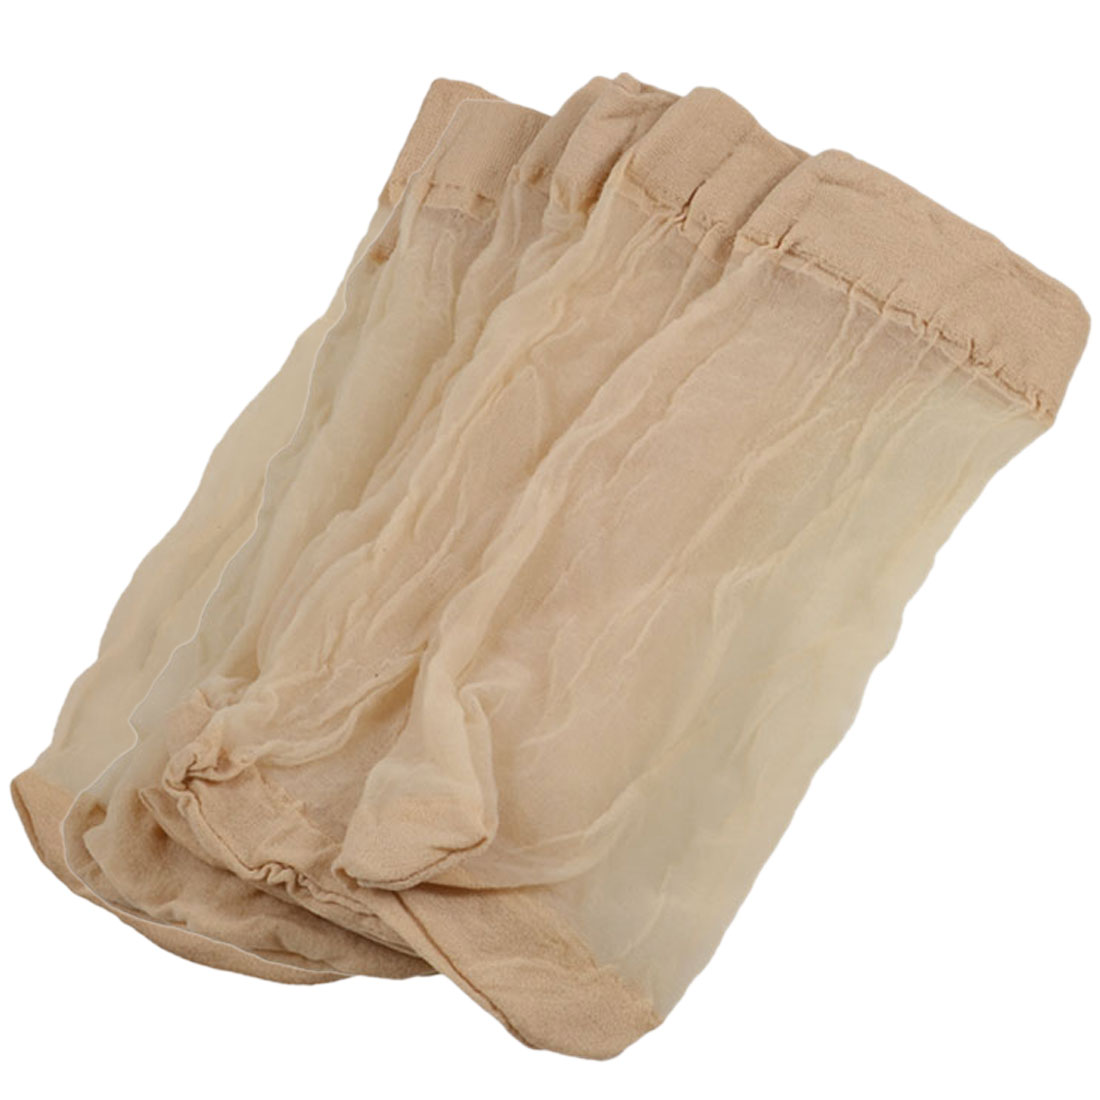 5 Pairs Beige Fitting Stretchy Sheer Socks for Laides